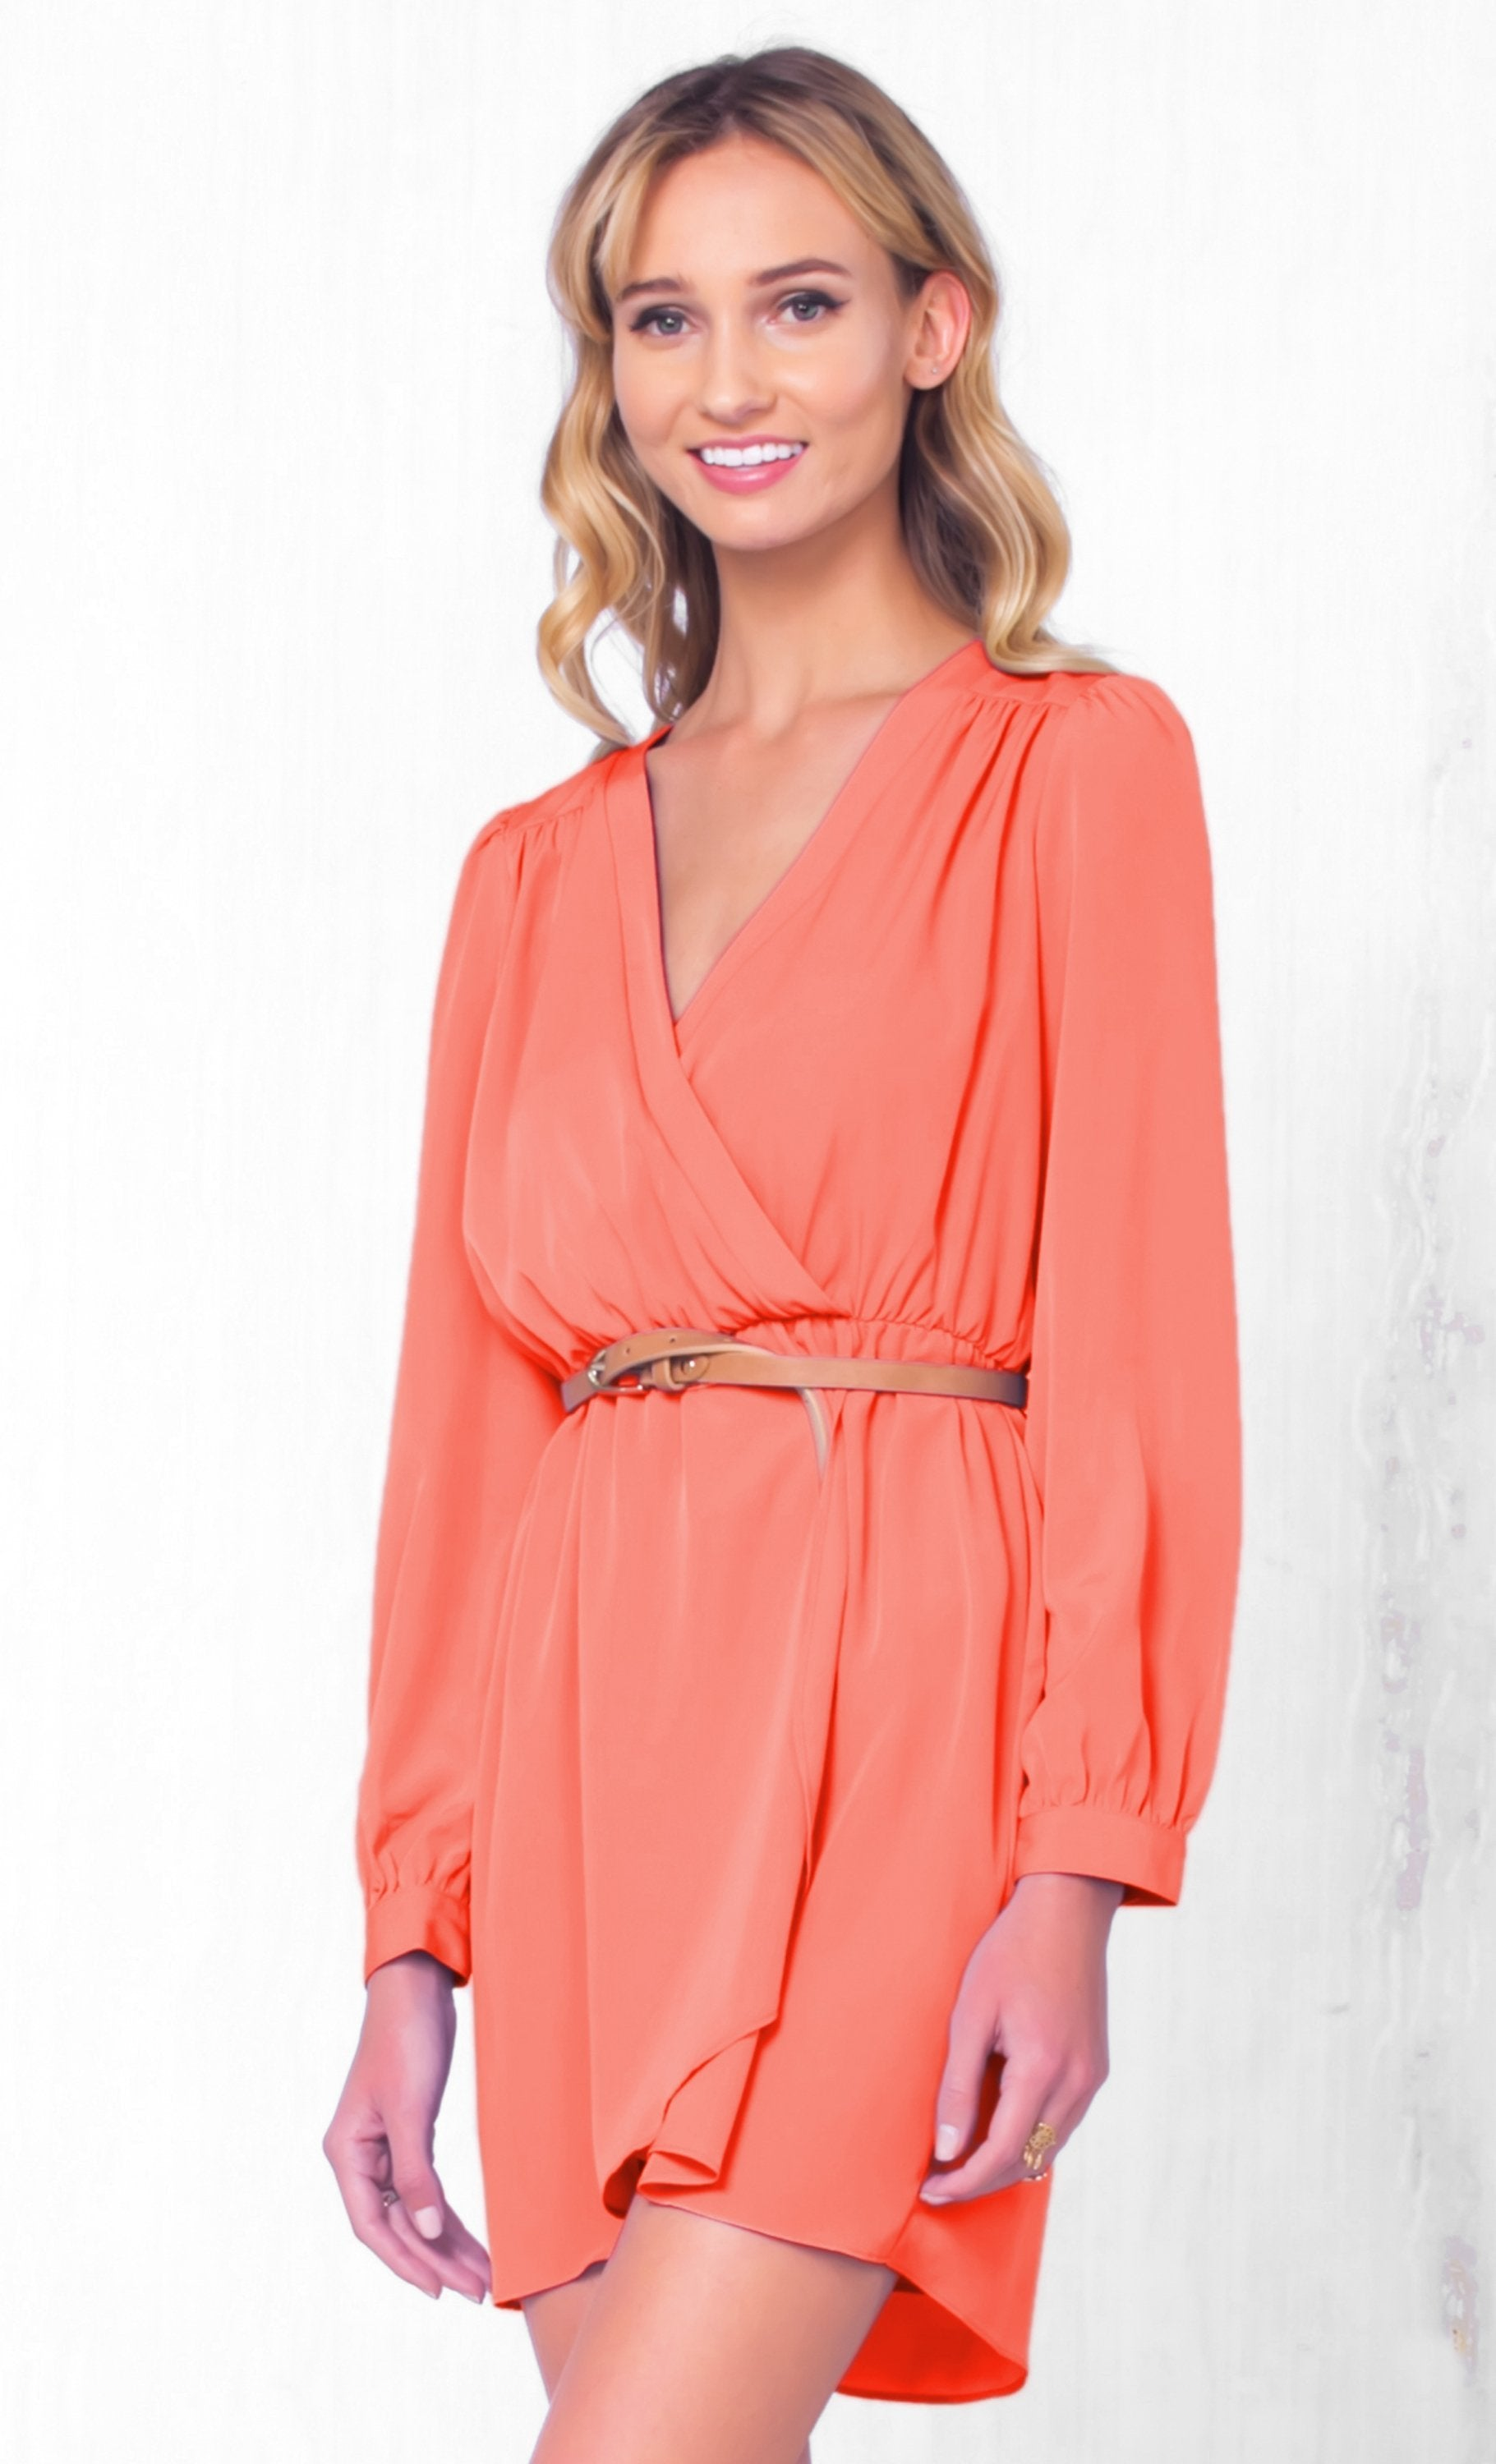 Indie XO That's A Wrap Coral Long Sleeve Cross Wrap V Neck Elastic Tulip Chiffon Mini Dress - Just Ours! - Sold Out